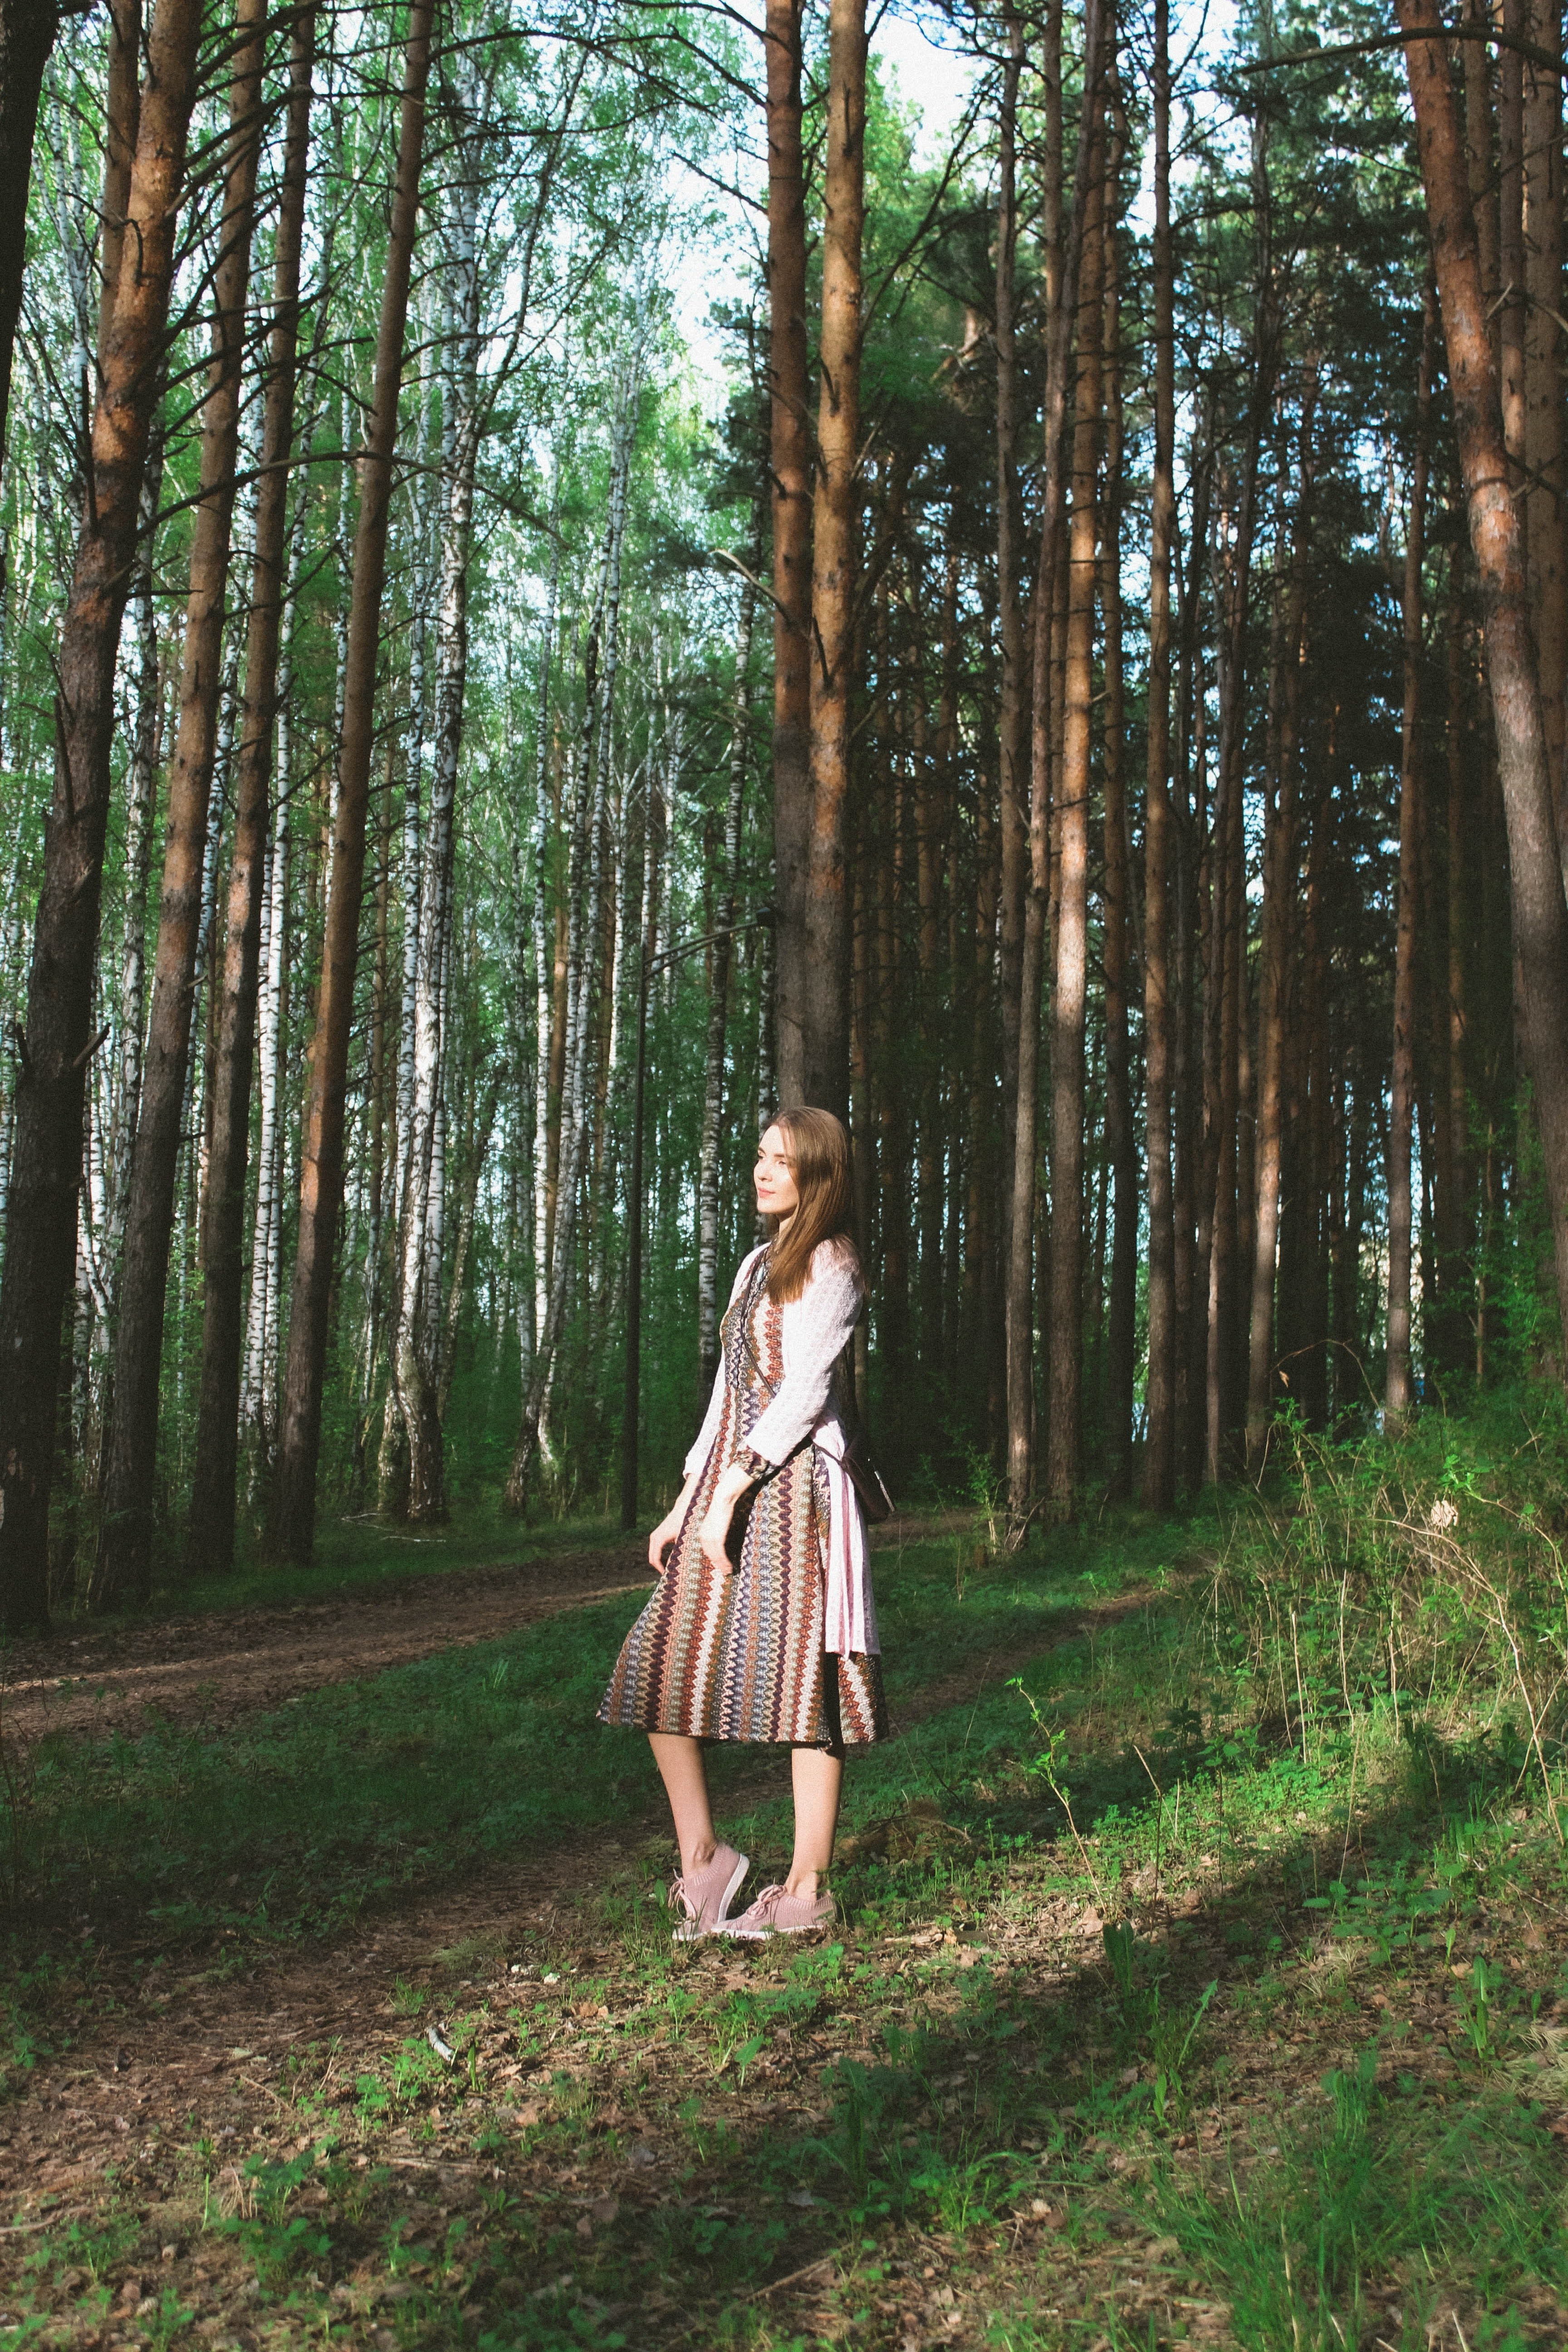 A woman in a dress standing in the forest. | Pexels/ Angelina Lobanova